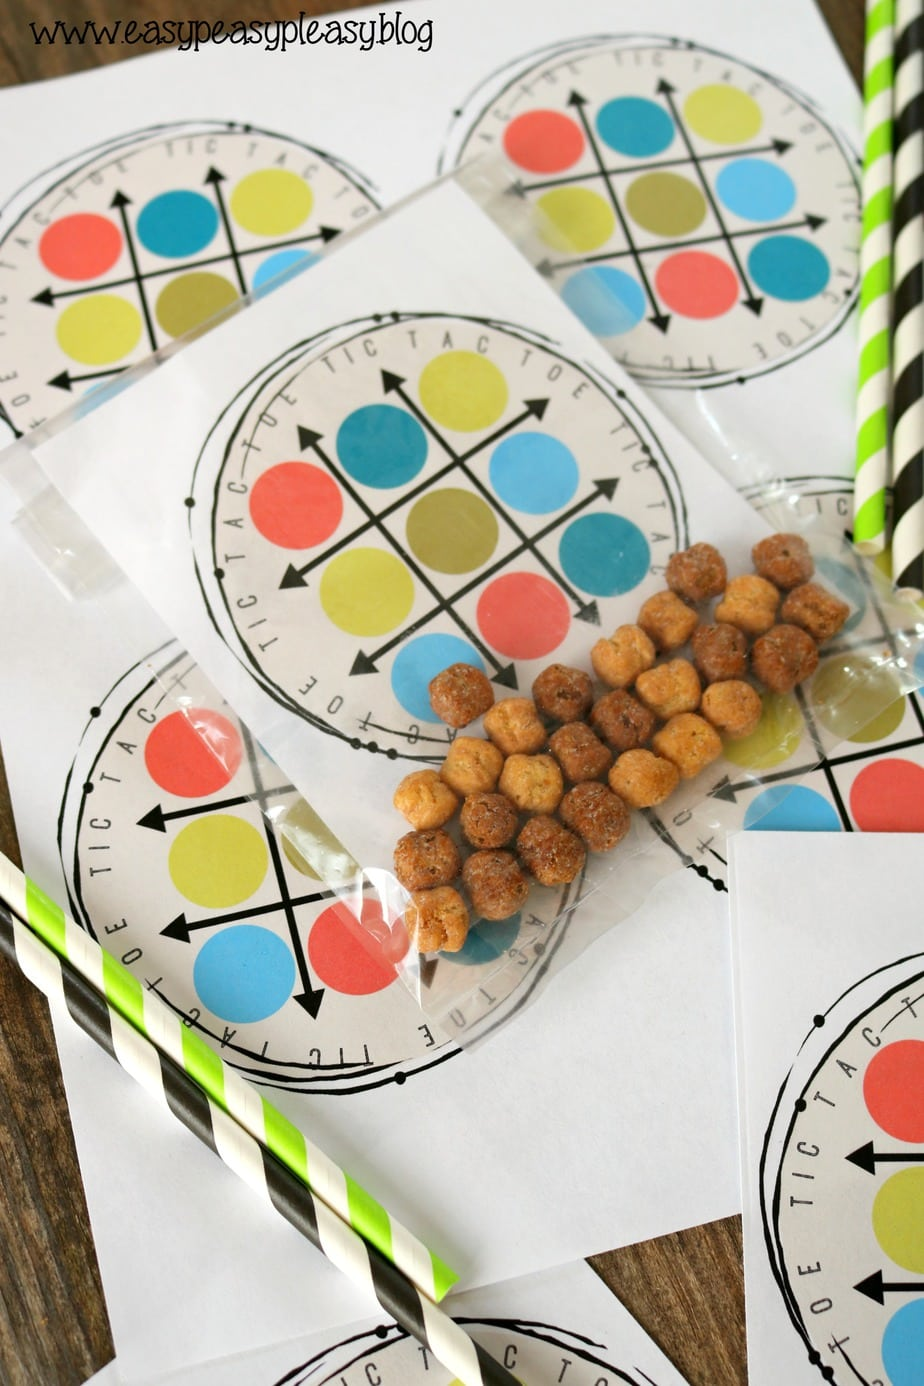 Free printable tic tac toe lunchbox game using cereal. Kids will have fun with this activity plus snack!